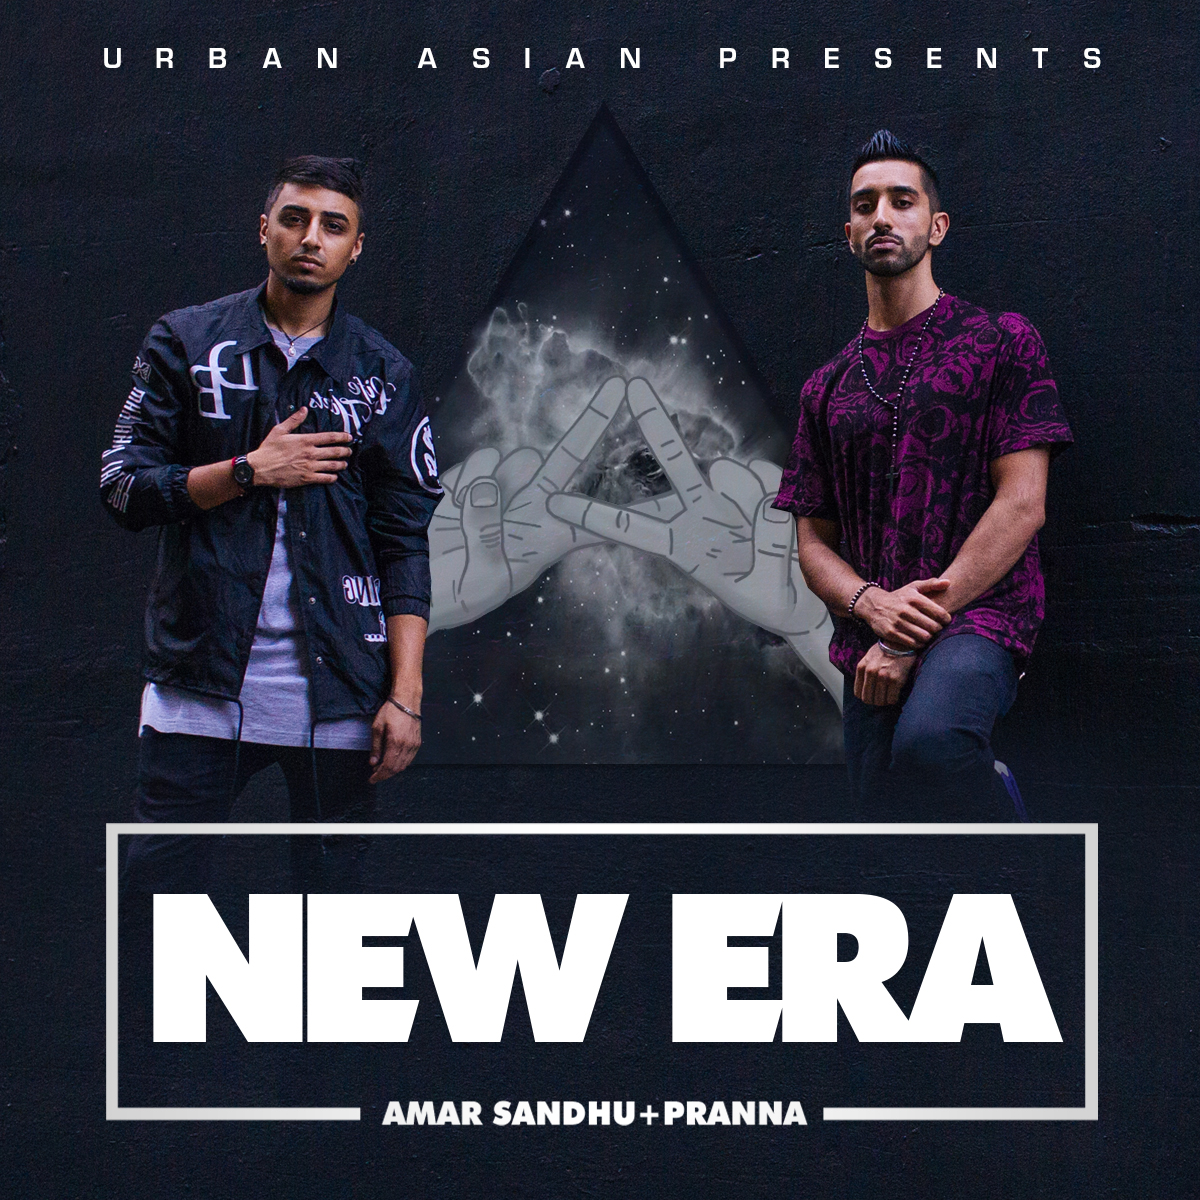 urban asian new era amar sandhu mickey singh pranna